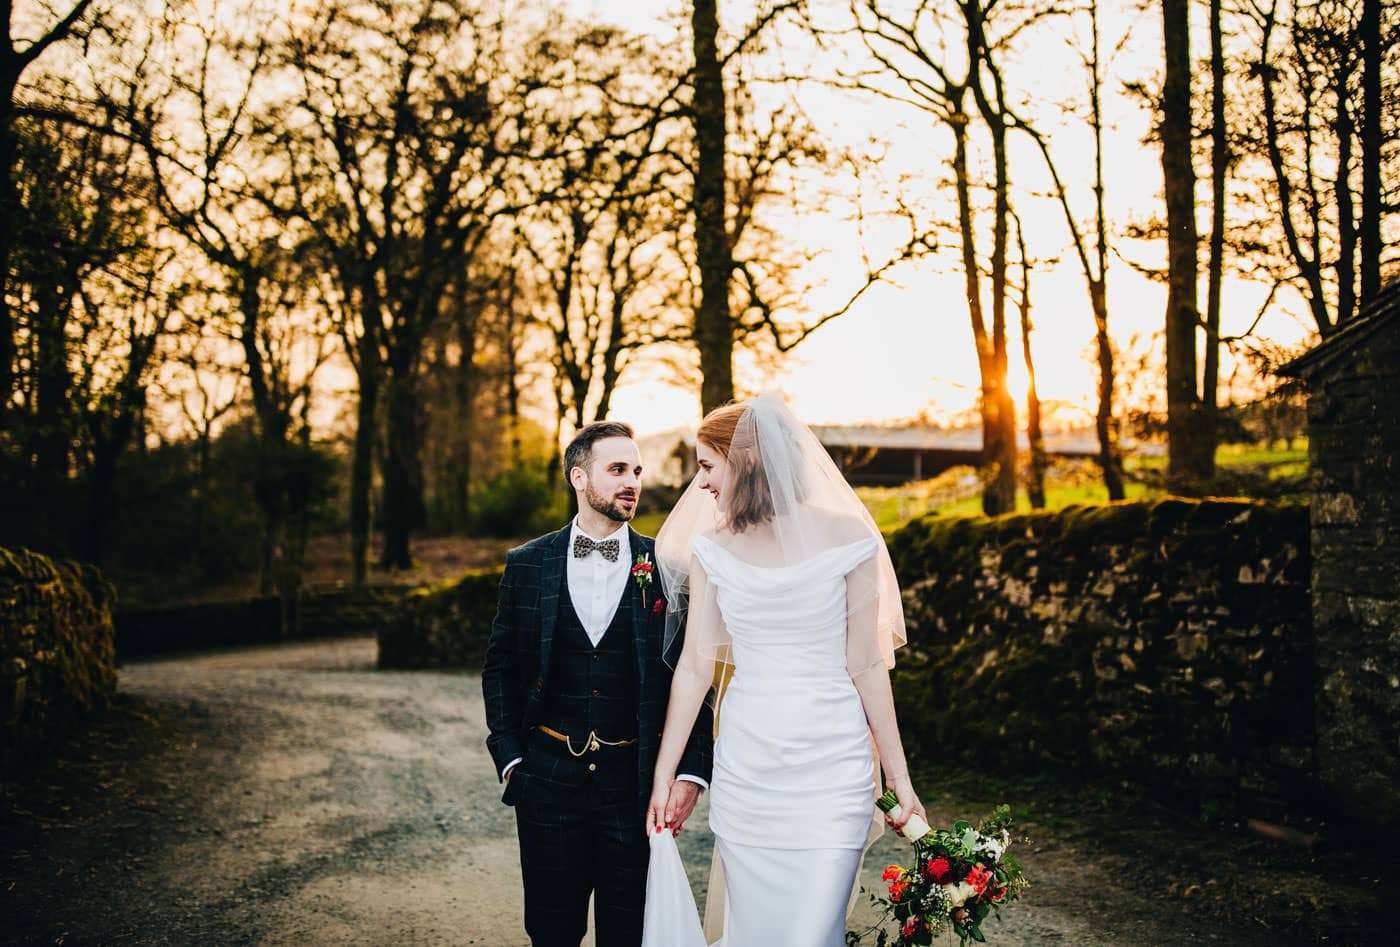 sunset portraits at Browsholme Hall - Lancashire wedding photographer